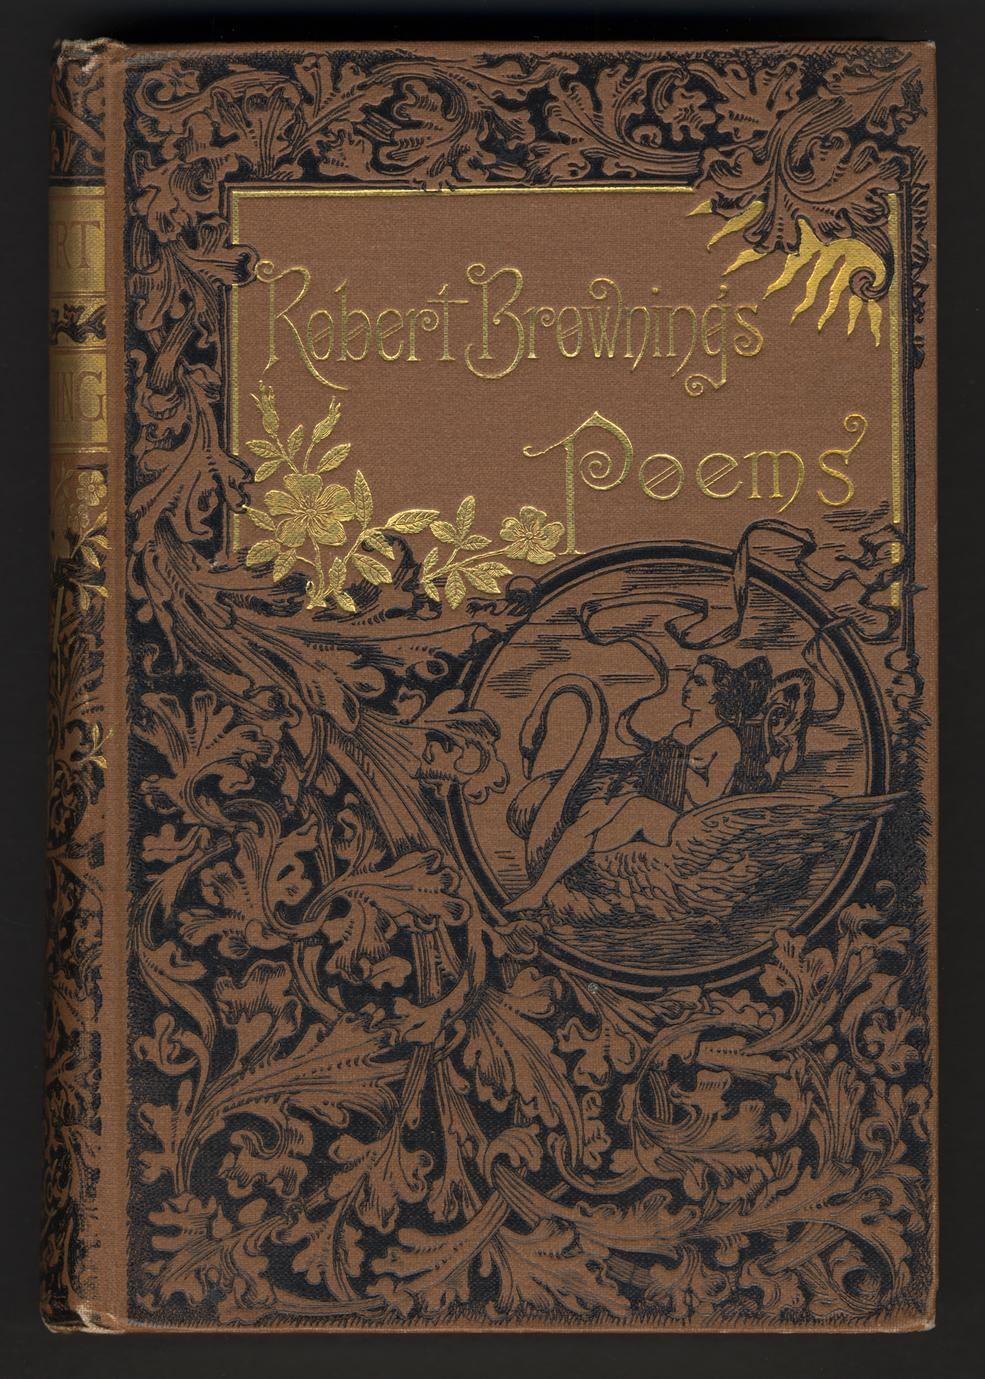 Selections from the poetical works of Robert Browning (1 of 3)